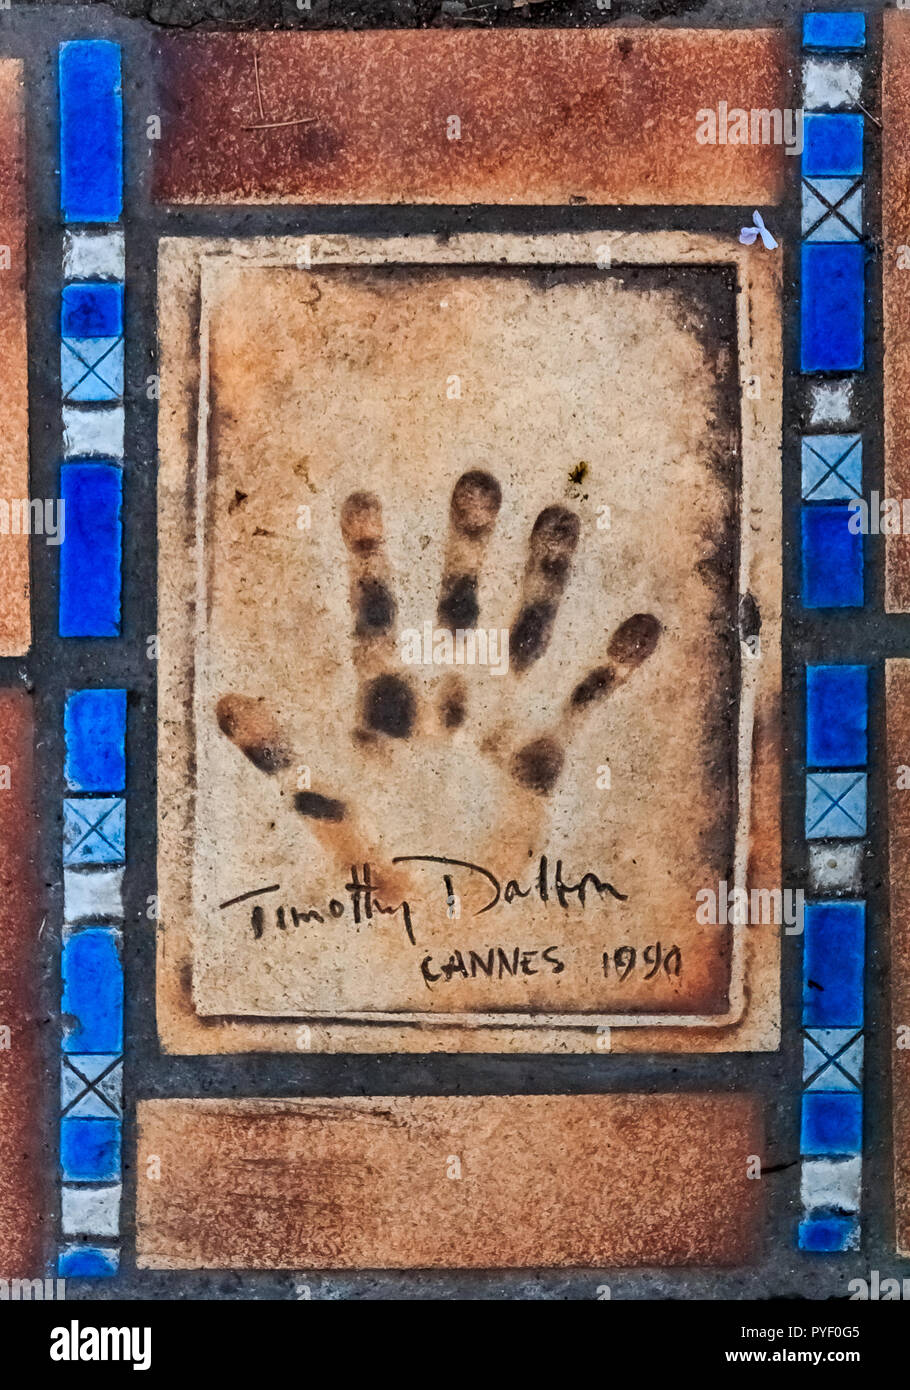 Cannes, France - October 18, 2013: Hand print of Timothy Dalton on the Cannes Walk Of Fame Stock Photo